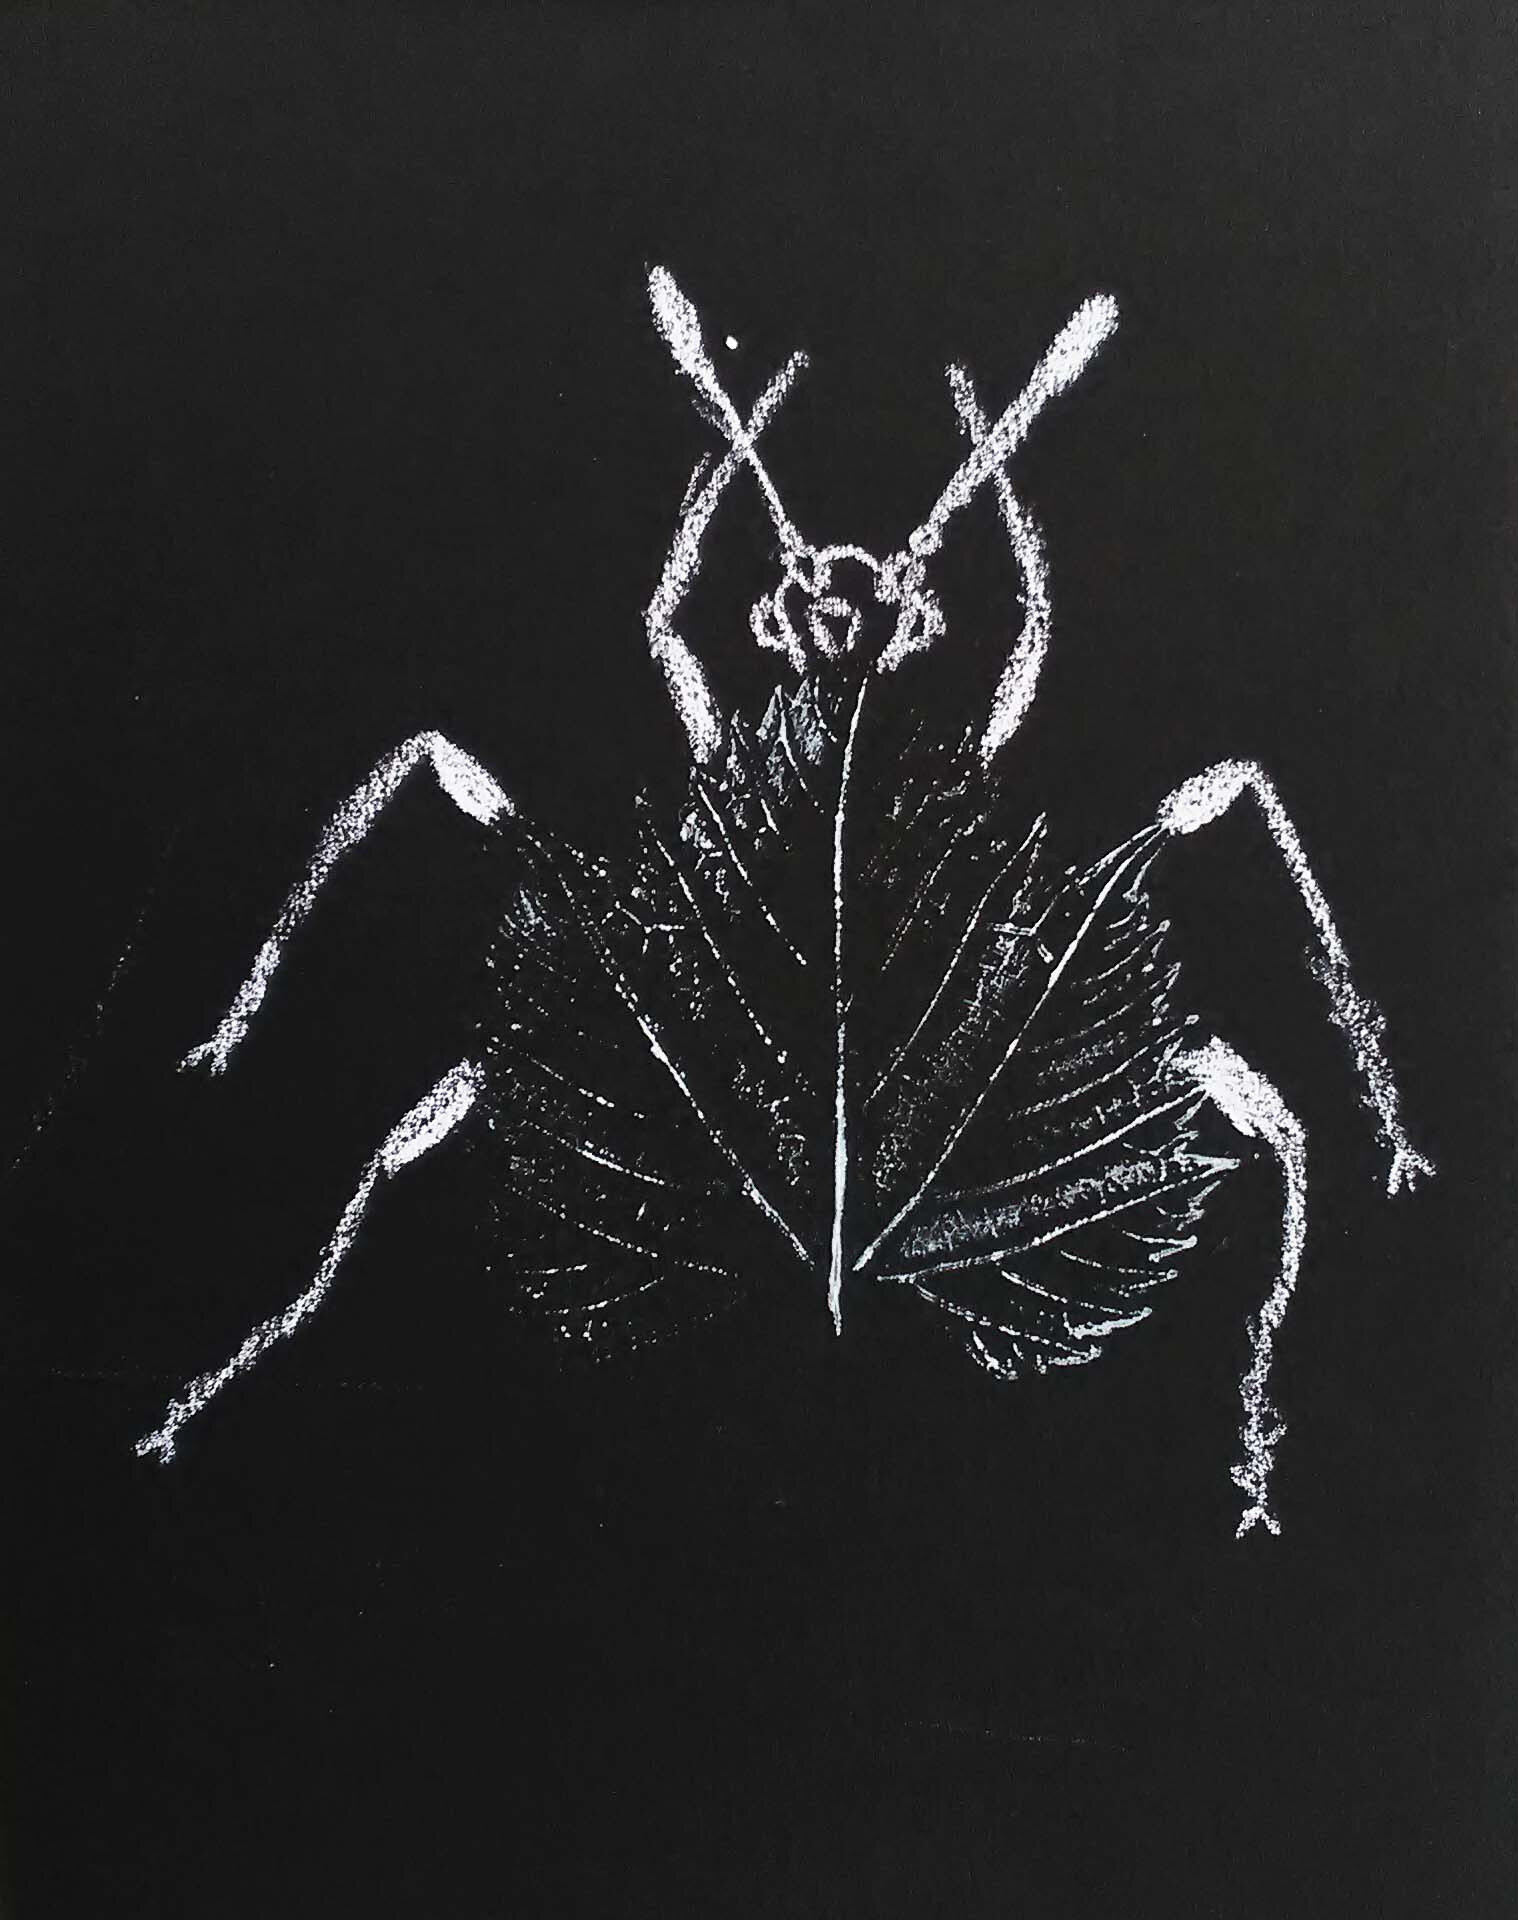 CassioInsect4